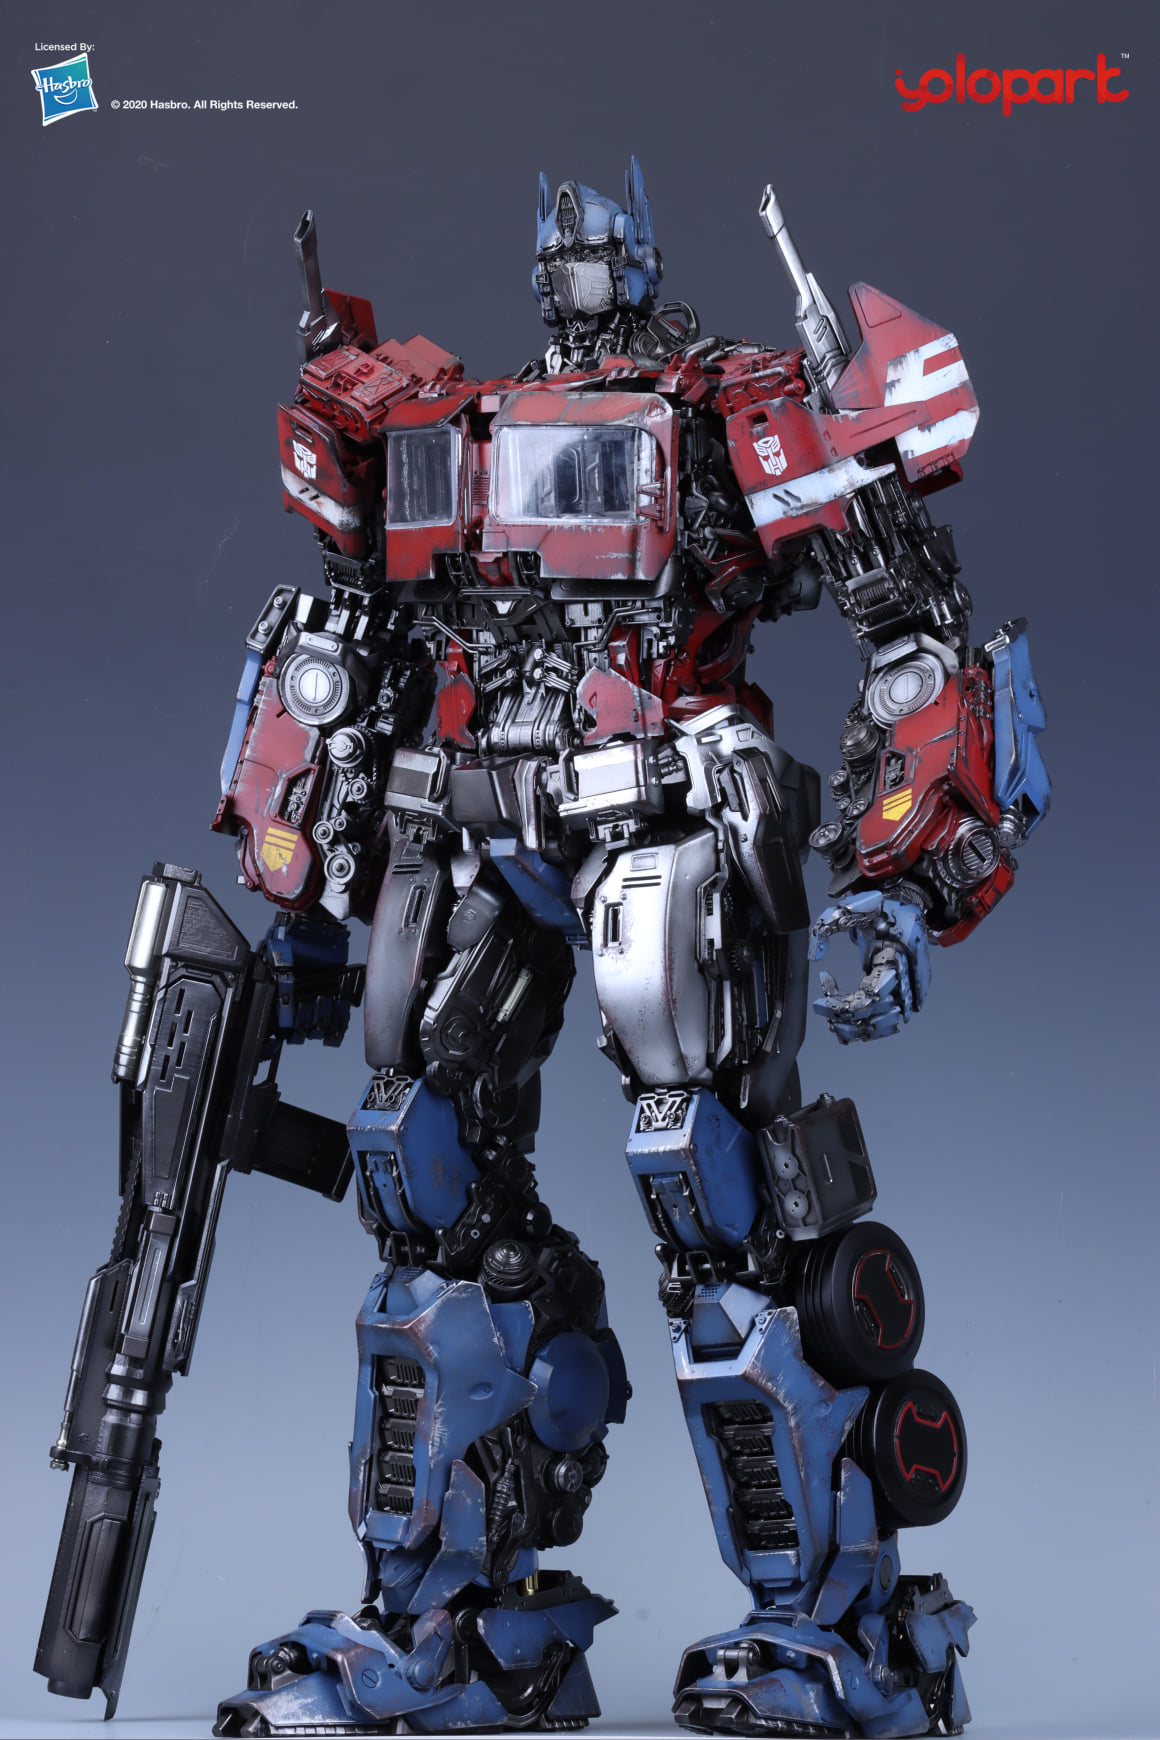 Transformers The Last Knight Optimus Prime Statue by Prime